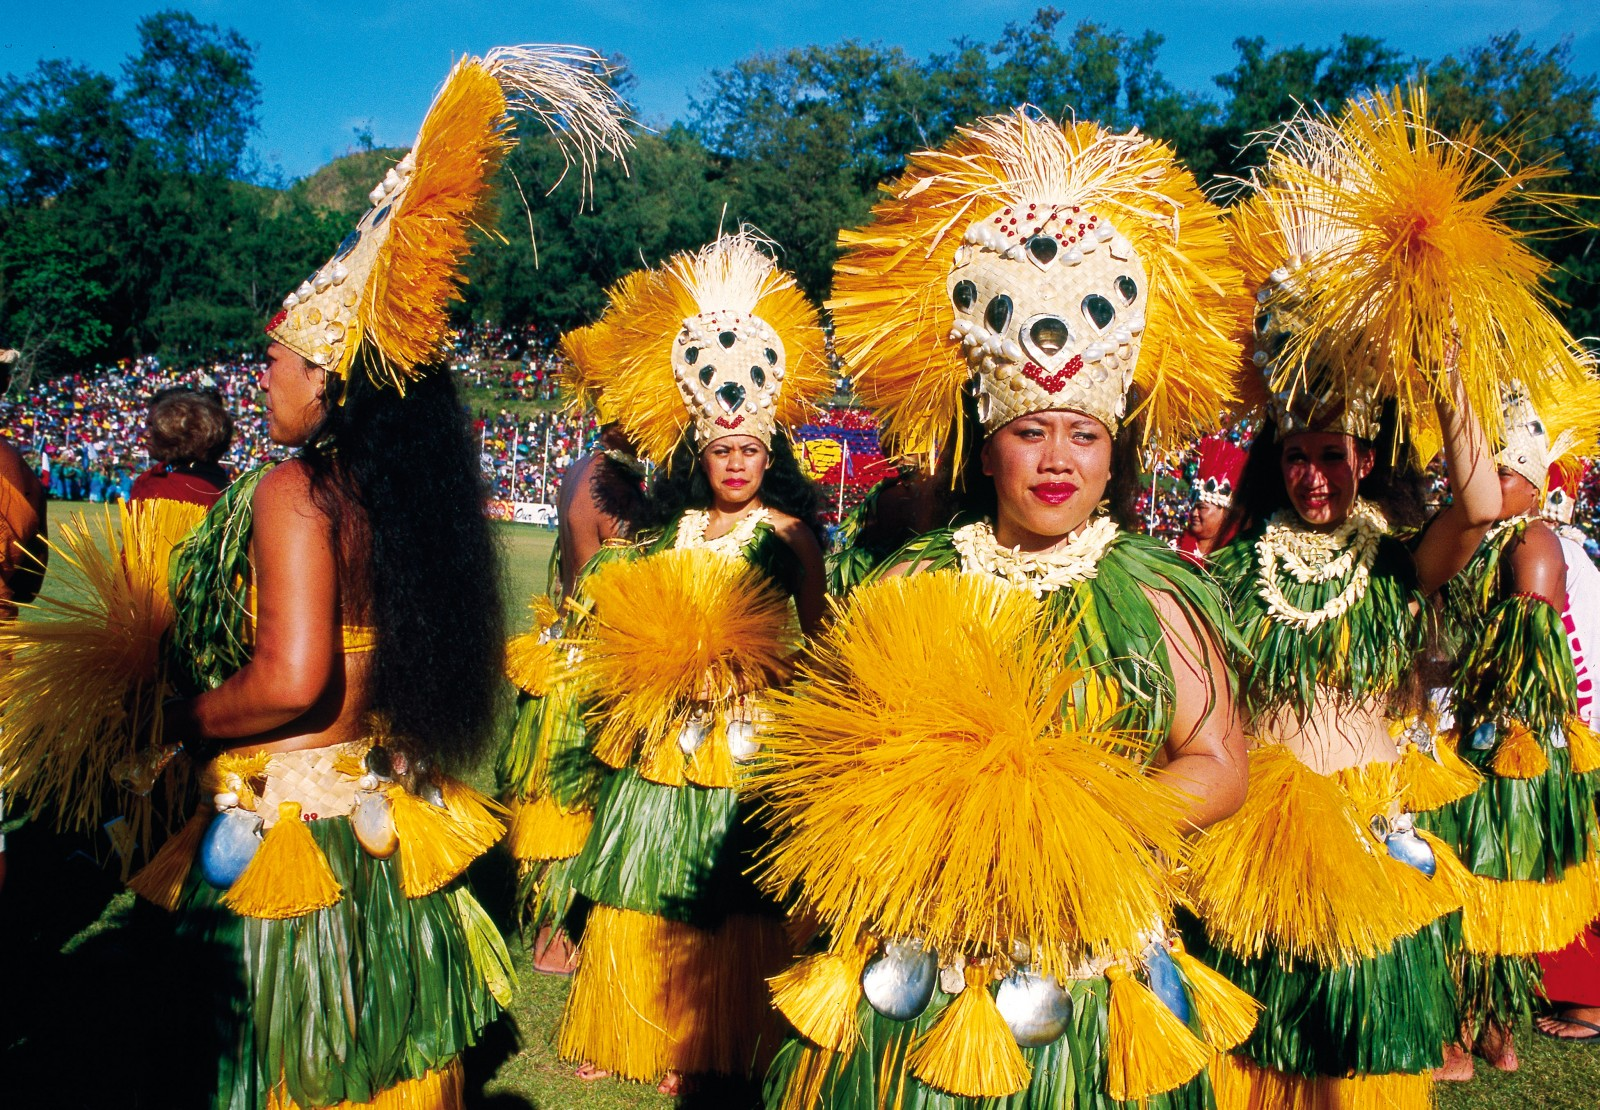 Women's 'ote'a dance from Tahiti and the Society Islands of French Polynesia features distinctive hip movements, ranging from isolated side thrusts through to shimmering circles or figures of eight. Spectacular costumes are made from brightly dyed, shredded pandanus and include high headdresses adorned with pearl shell.